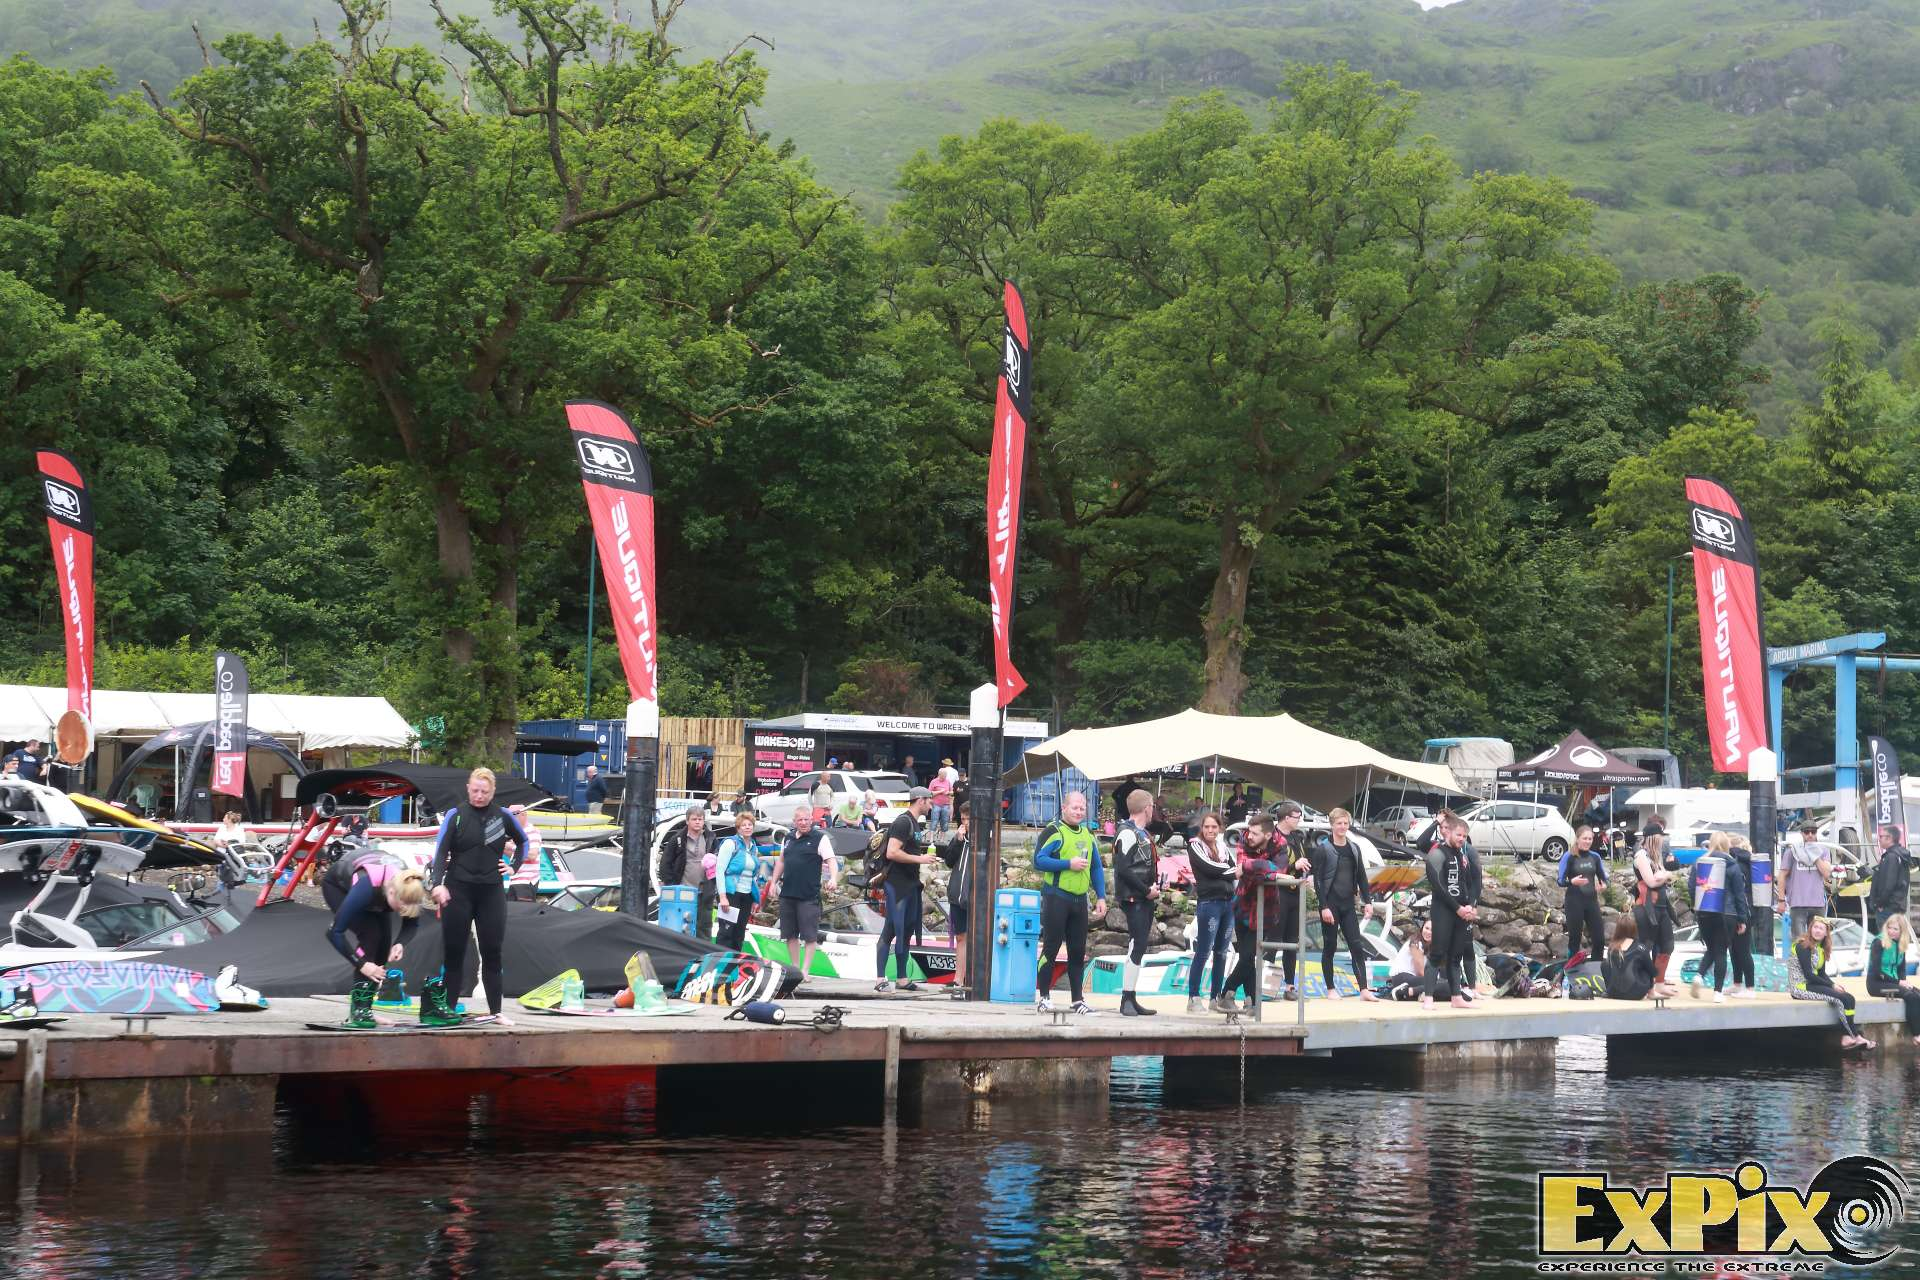 LochStock Wakeboard Competition